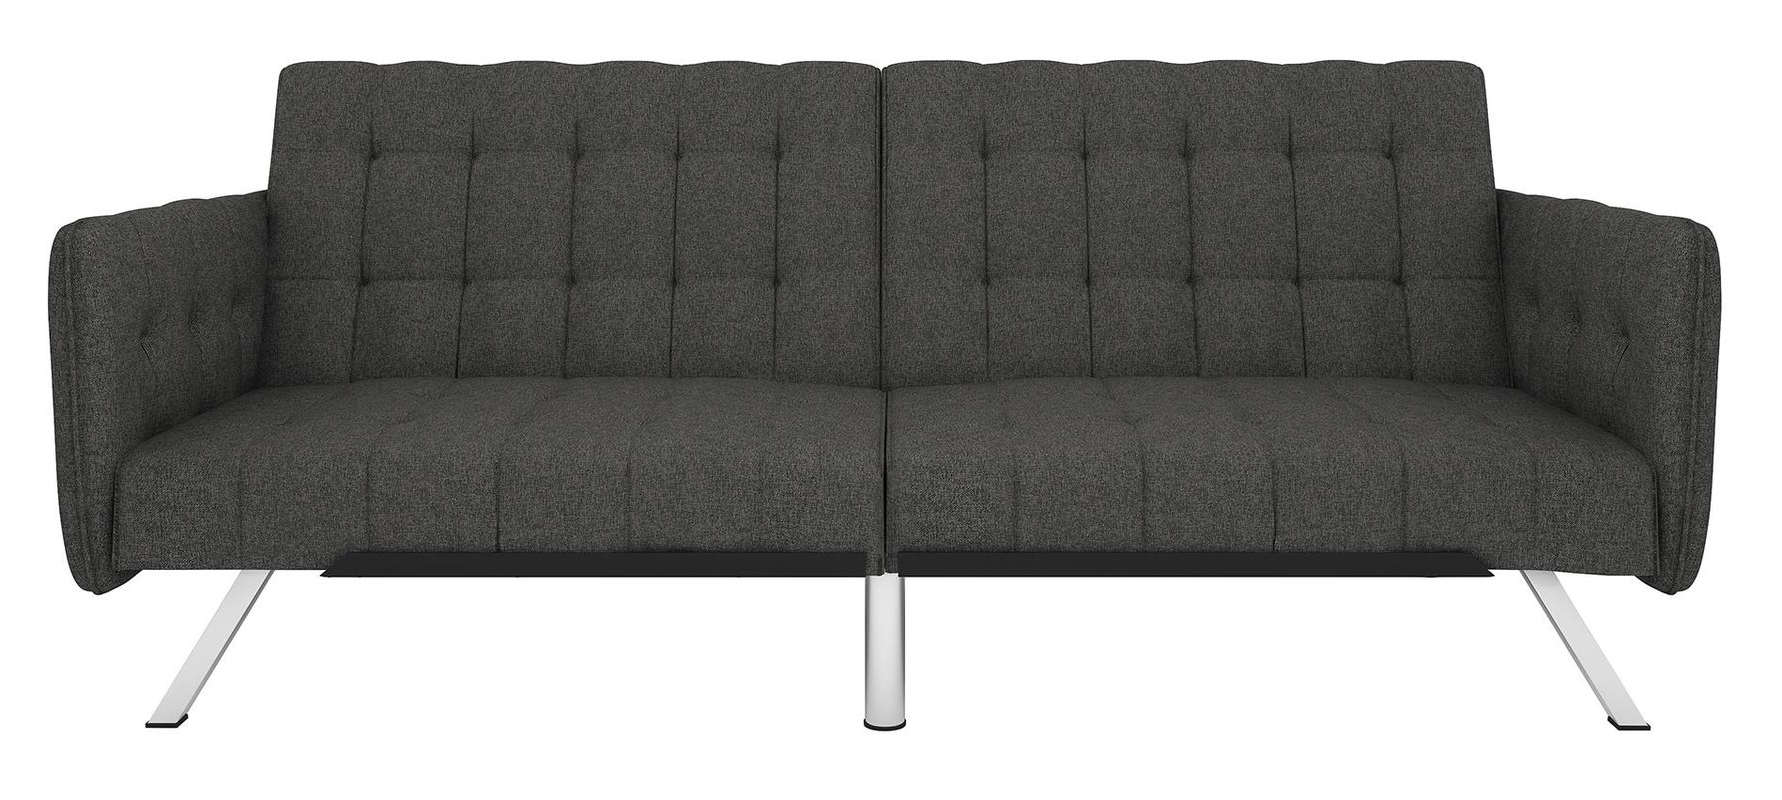 Joss & Main Intended For Convertible Sofas (View 11 of 20)